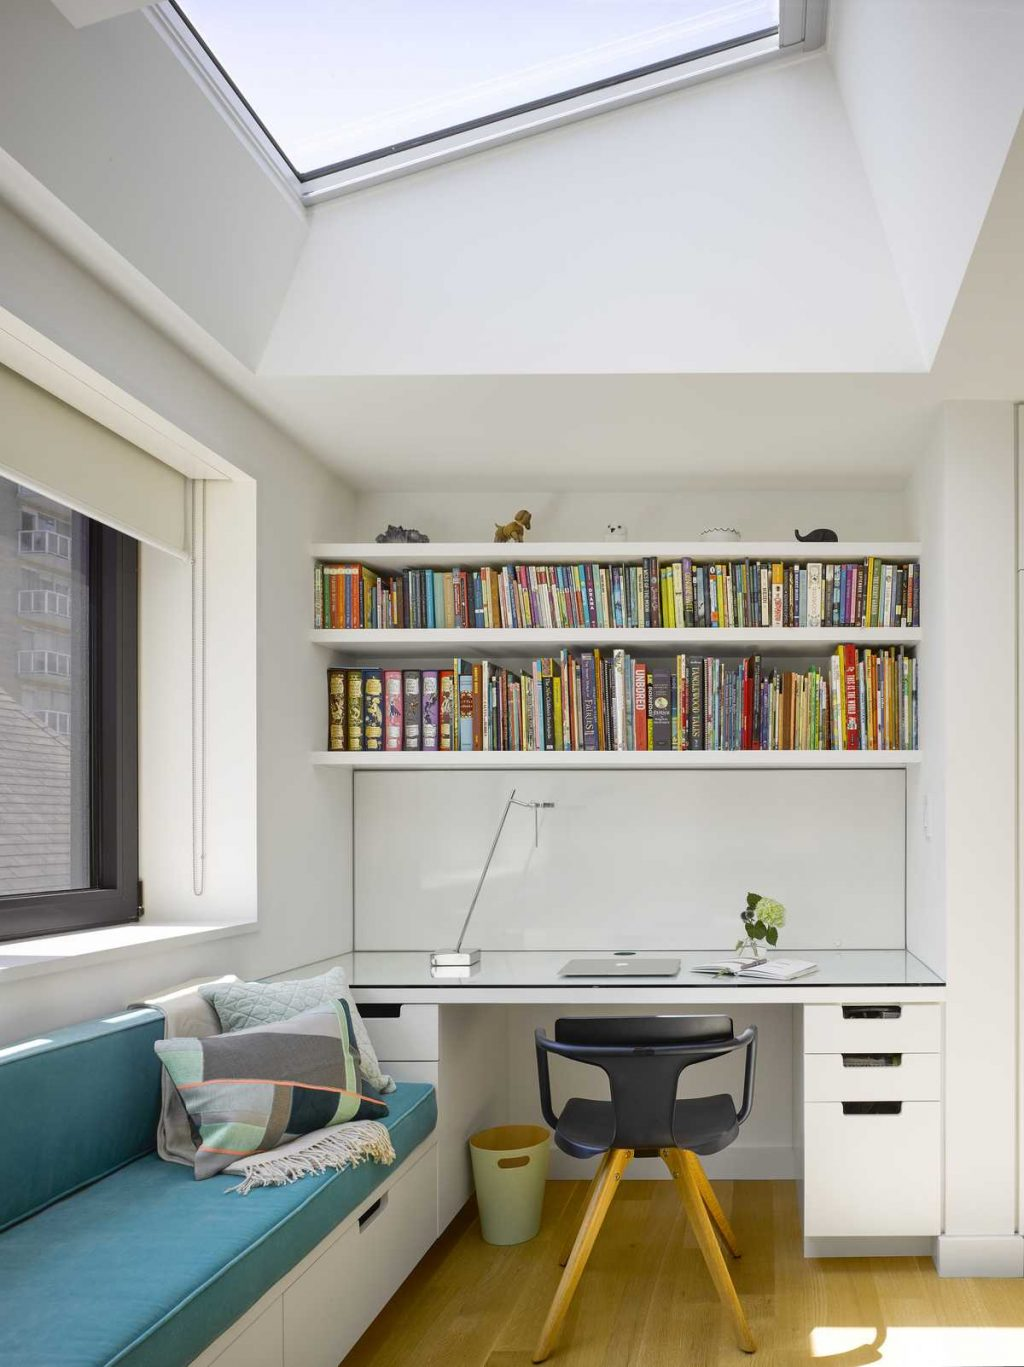 A renovation and addition to an Edwardian-era house in Toronto